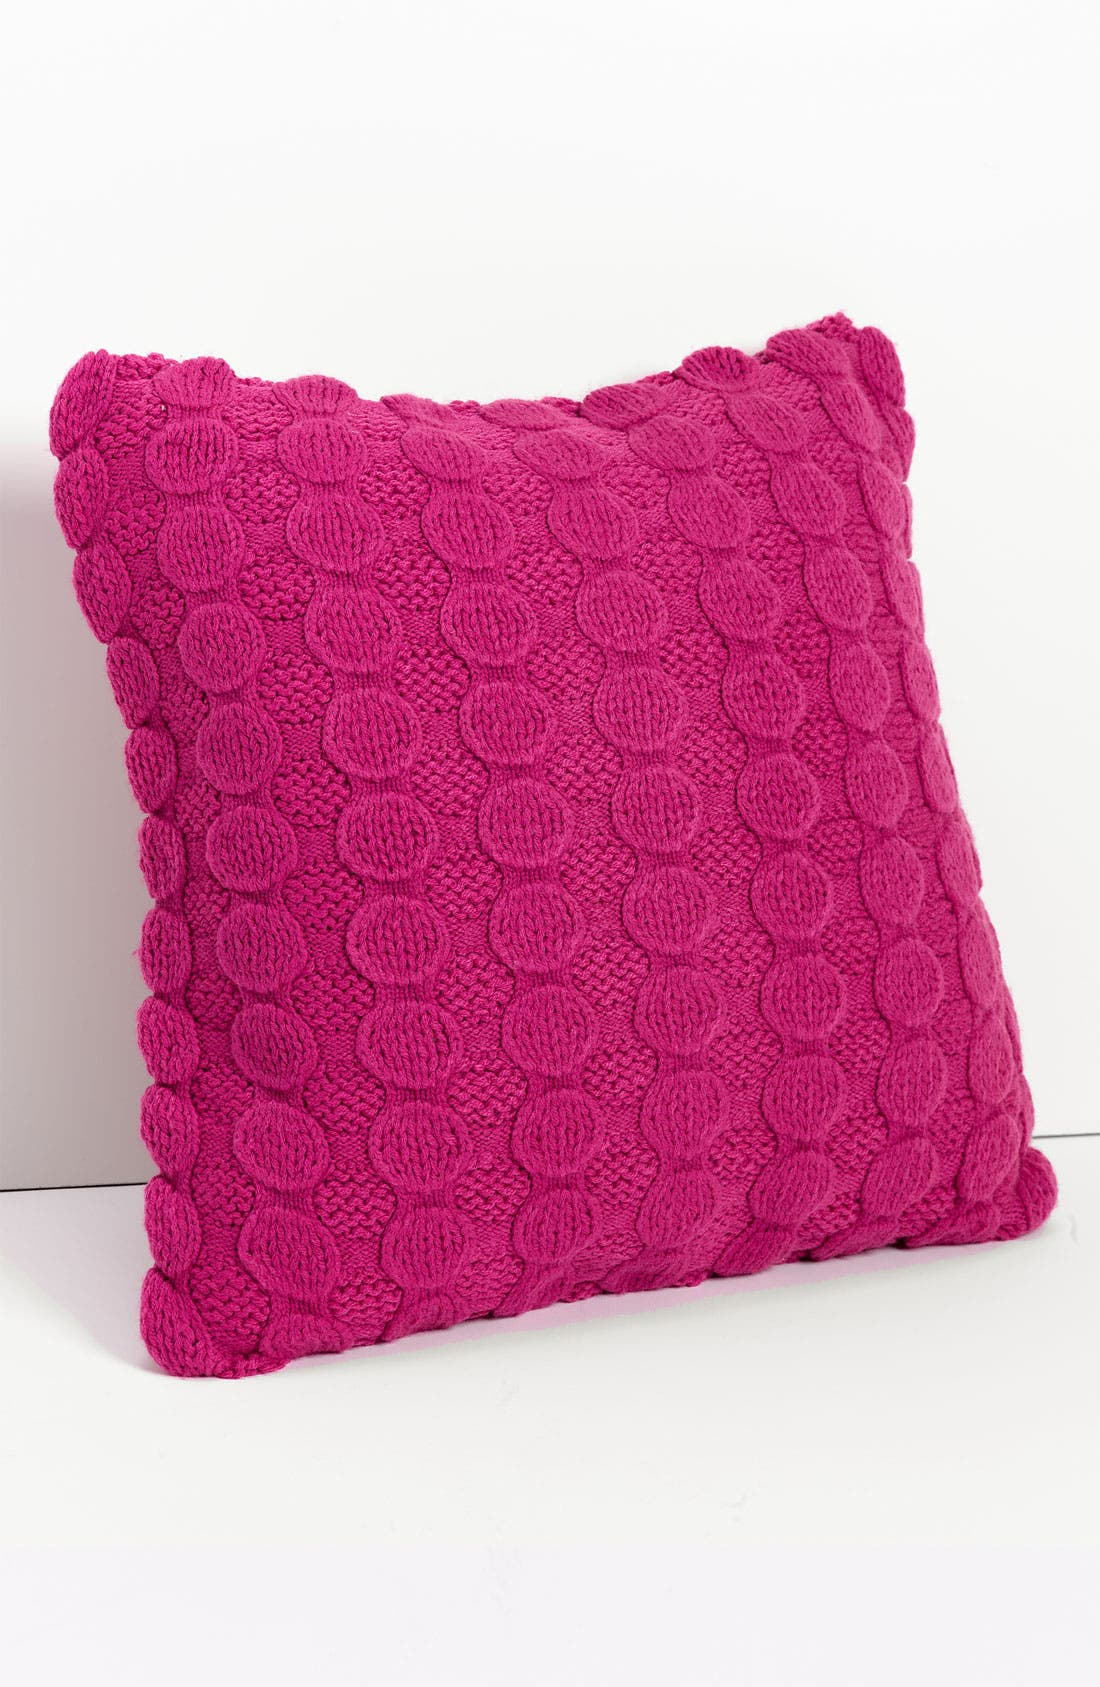 Main Image - Nordstrom at Home 'Bubble Wrap' Knit Pillow